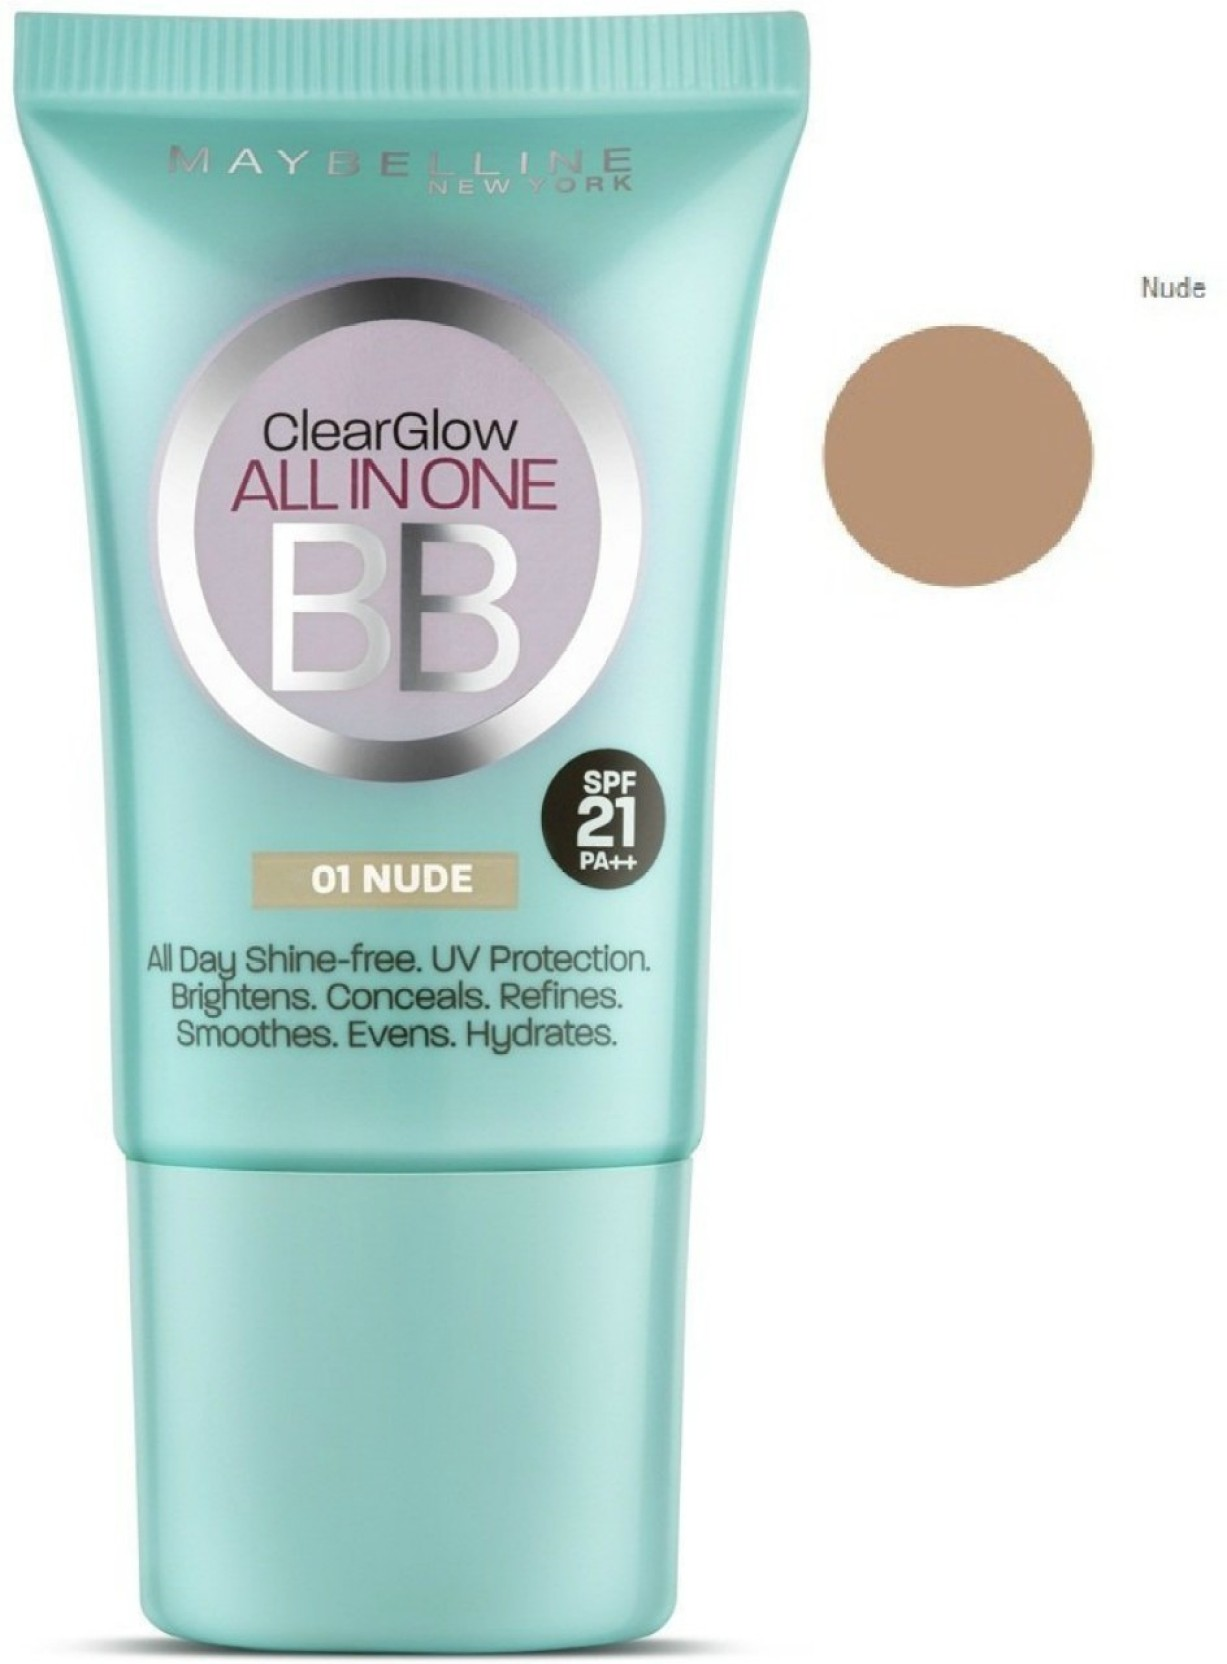 Maybelline Clear Glow All In One Bb Cream 01 Nude Price India Fresh Mat Cushion 02 Light Add To Cart